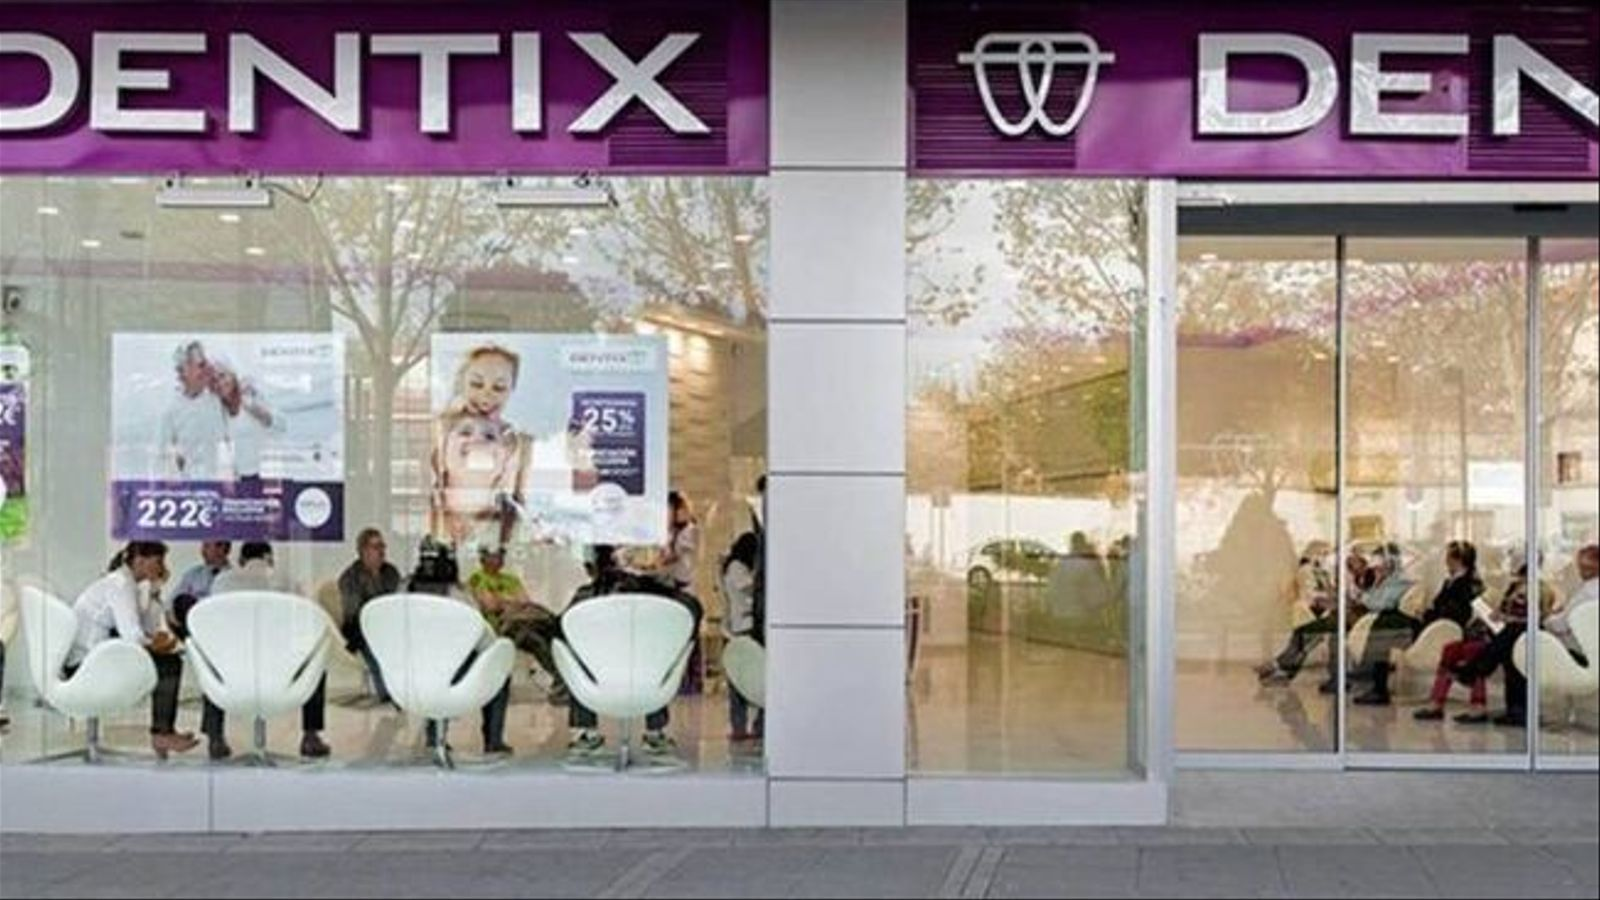 Clinica de Dentix